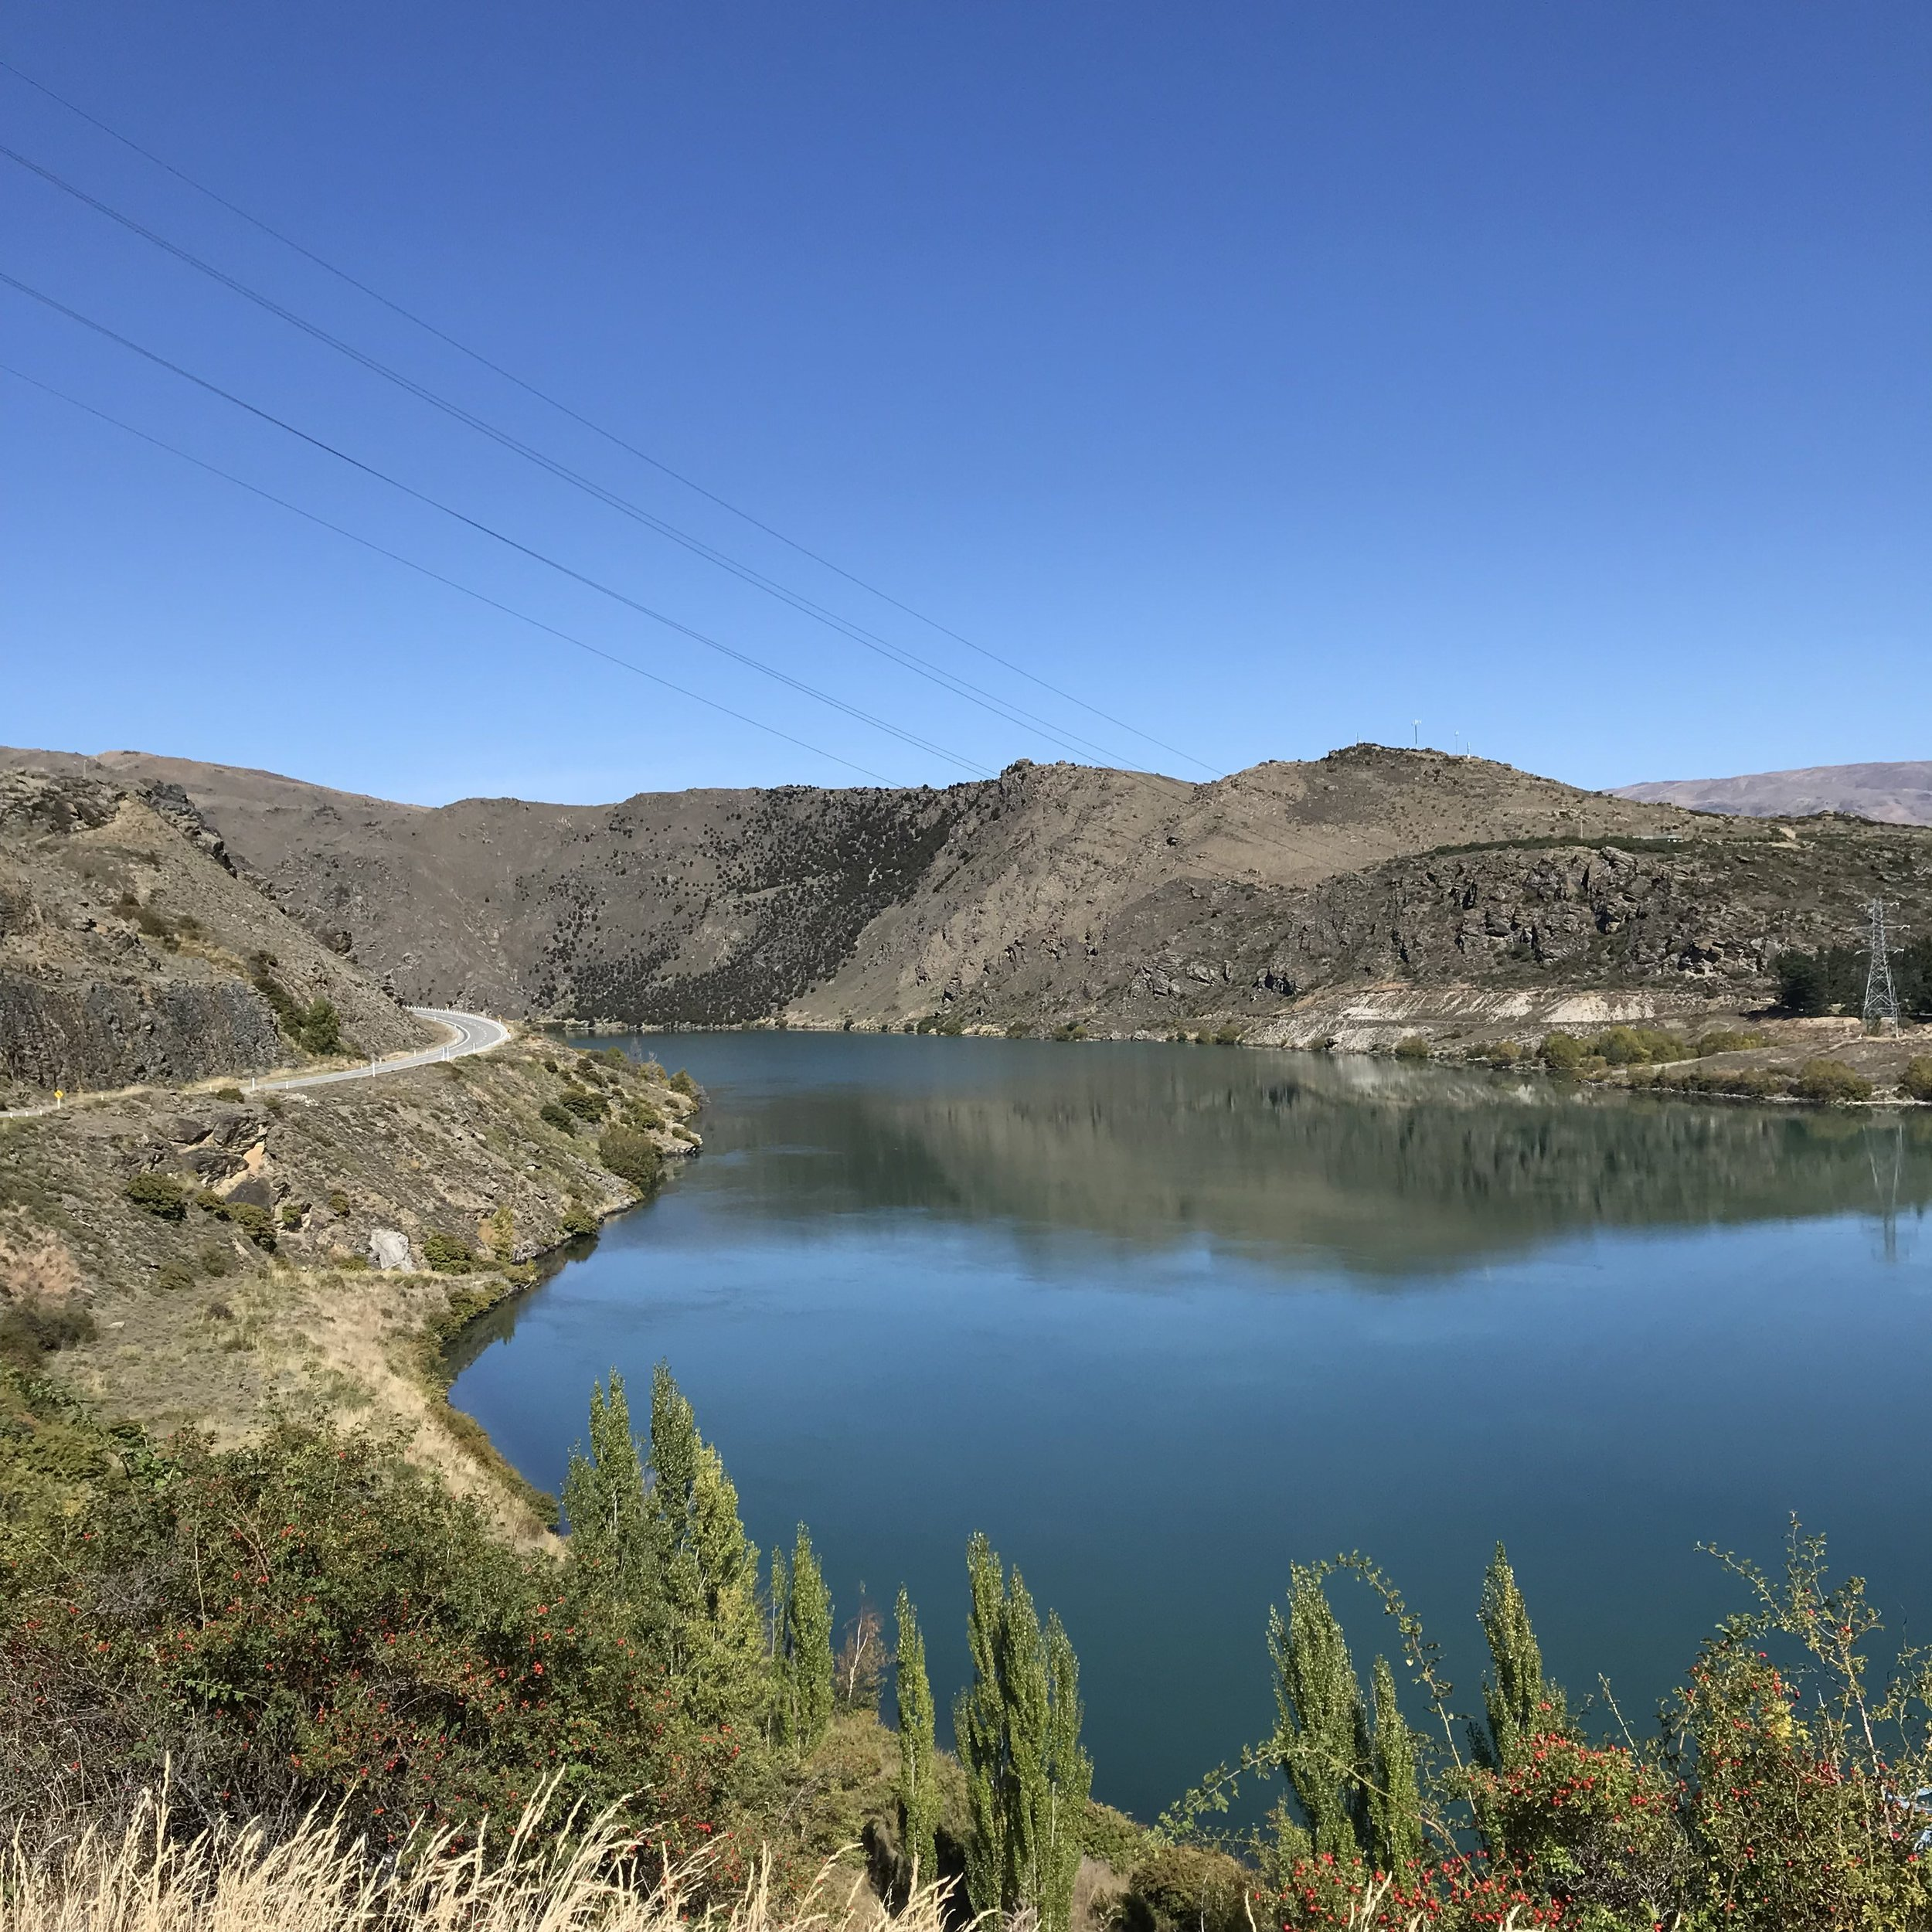 Central Otago, New Zealand (image by Jacqui Gibson).